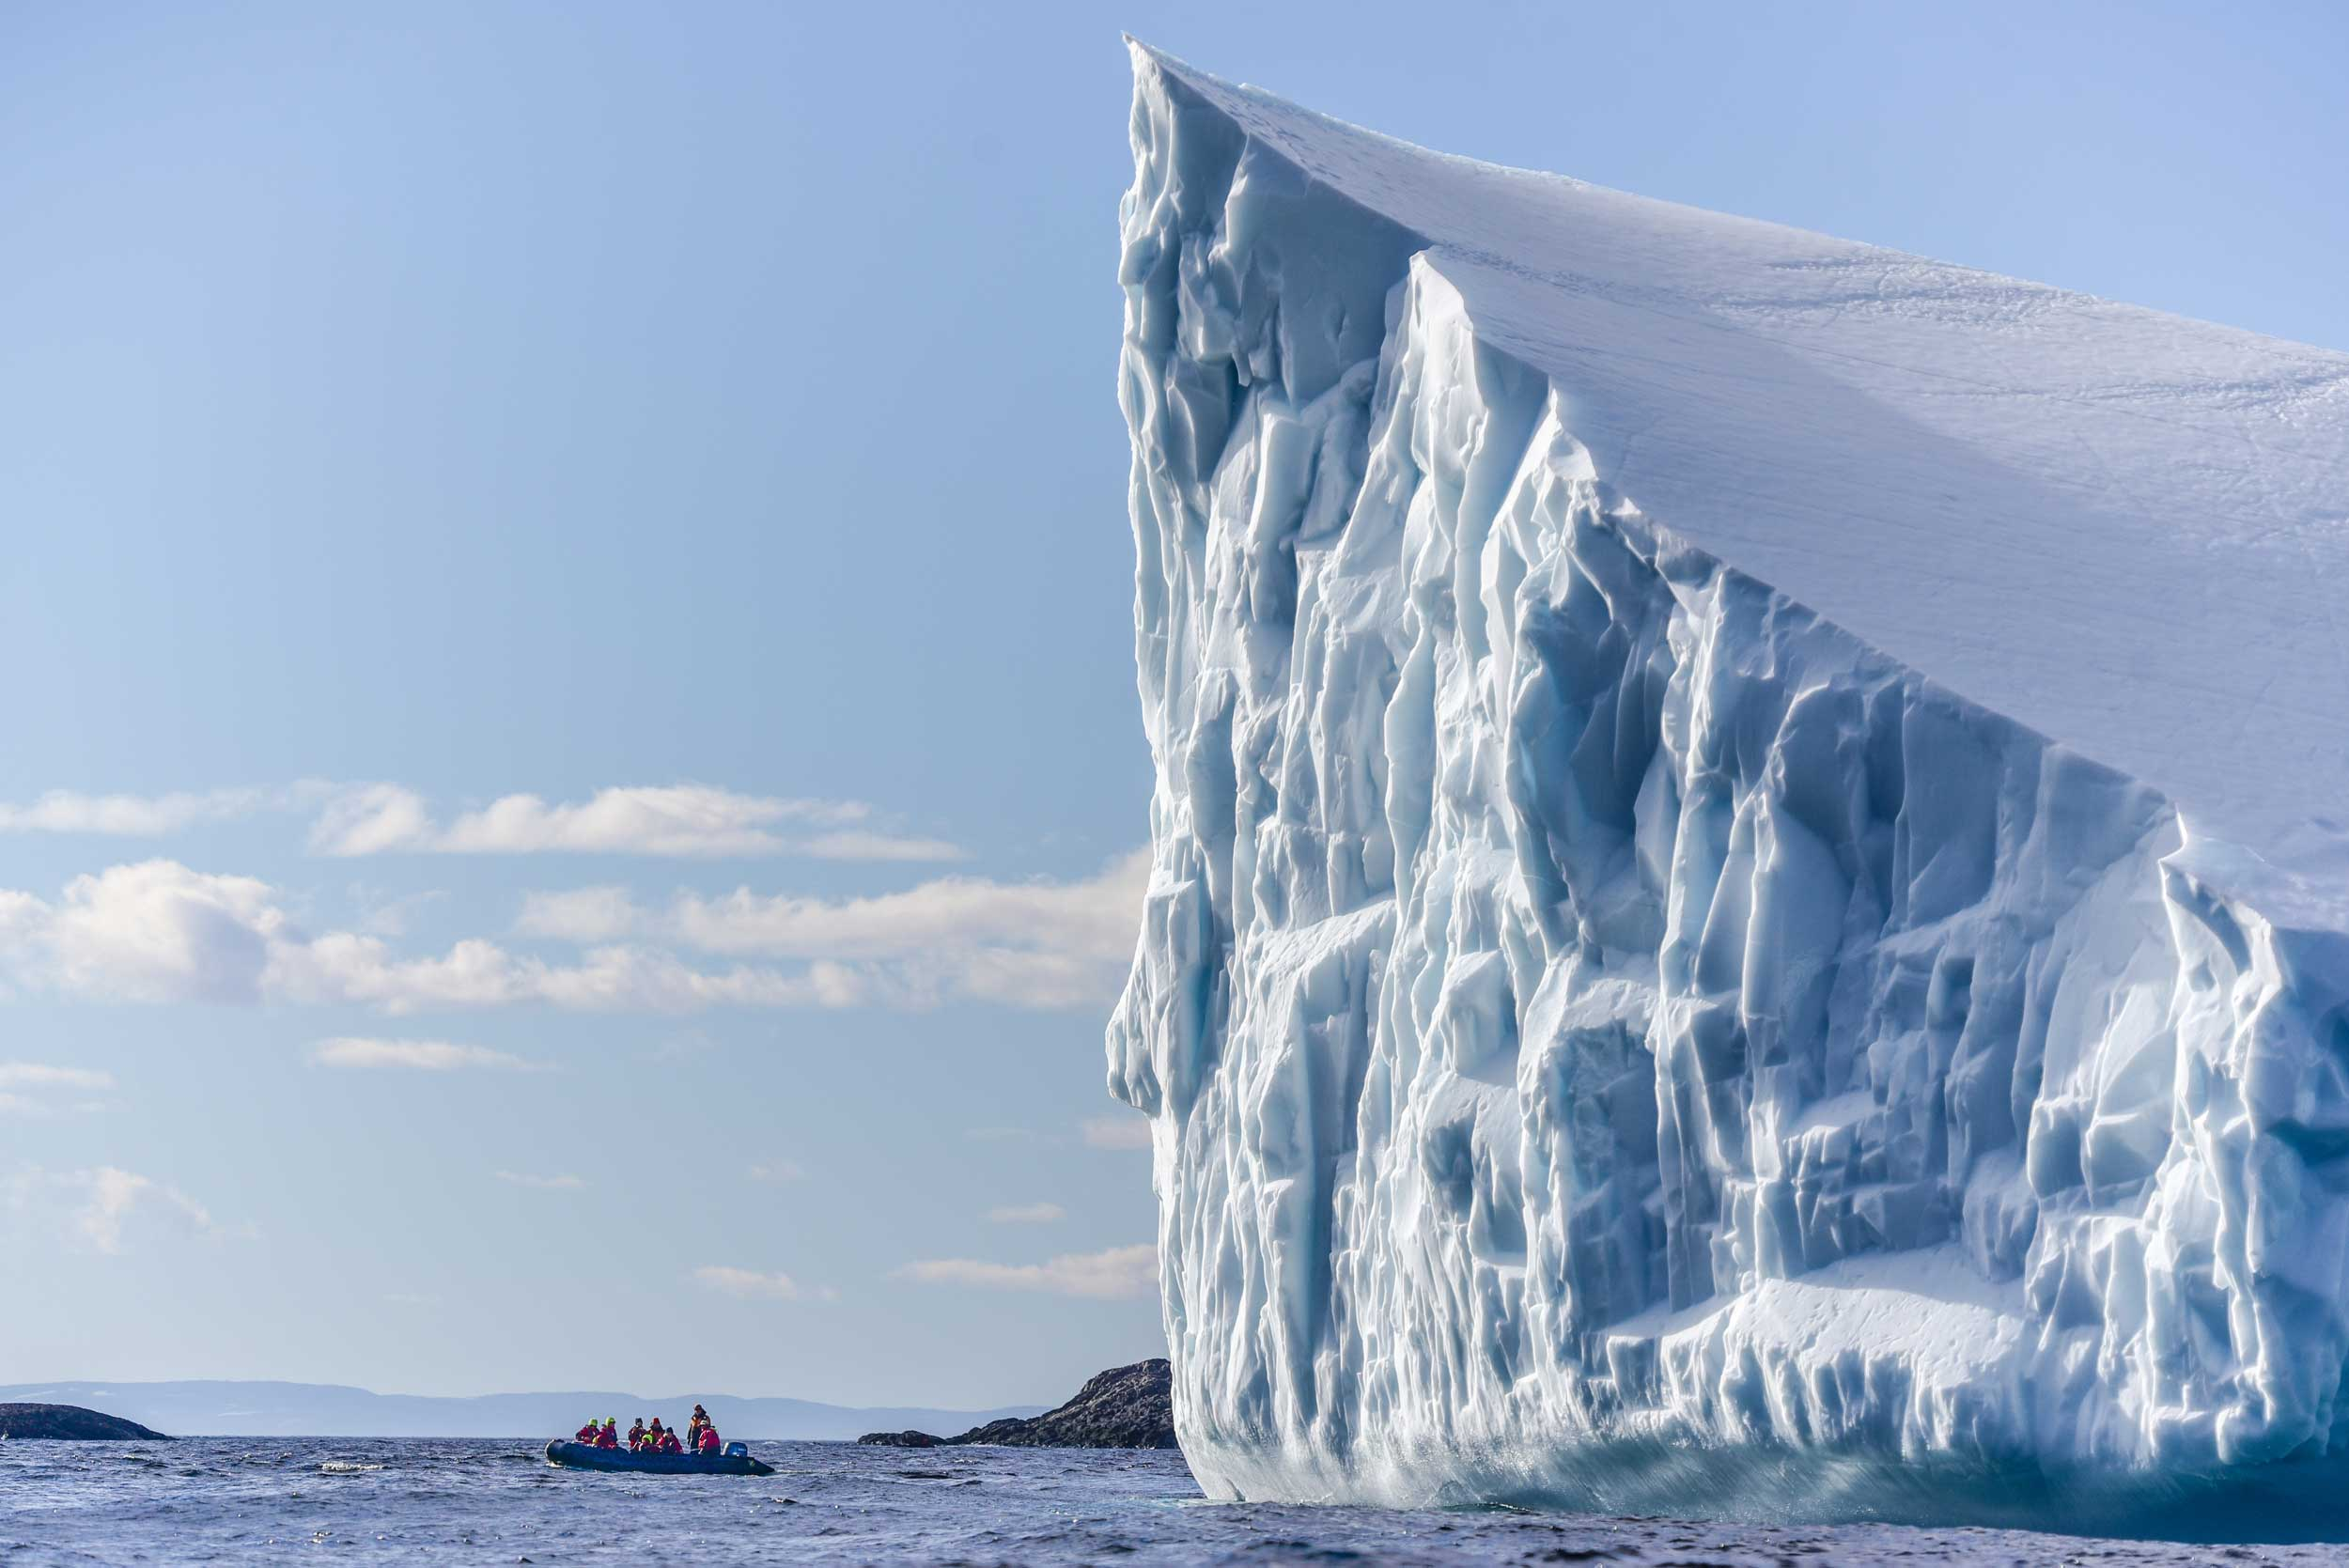 Huge pointed iceberg with small zodiac boat and passengers to the left